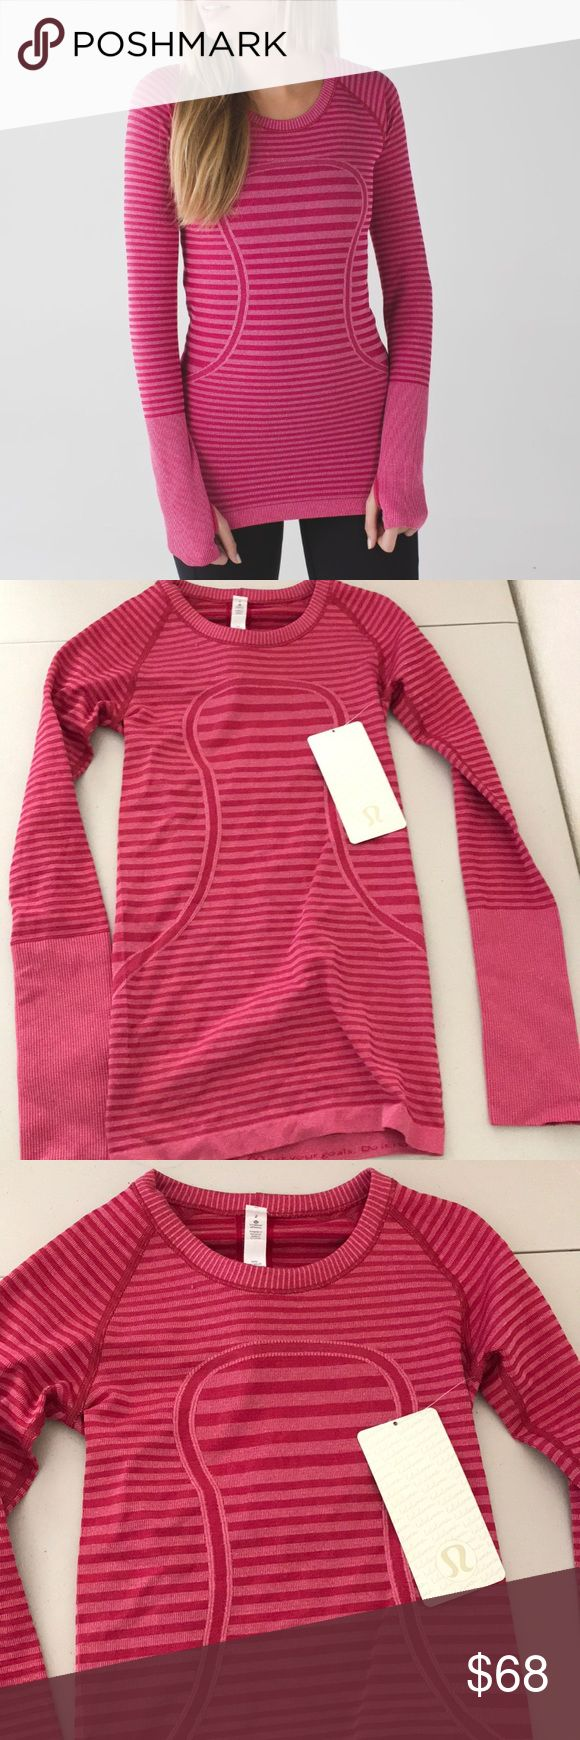 NWT HBRL LULULEMON SWIFTLY LS CREW LUCY STRIPE - 2 Brand: Lululemon Athletica Swiftly long sleeve crew Lucy stripe pink          Condition: New with tag || Size 2  || HBRL pink   📌NO  TRADES  🛑NO LOWBALL OFFERS  ⛔️NO RUDE COMMENTS  🚷NO MODELING  ☀️Please don't discuss prices in the comment box. Make a reasonable offer and I'll either counter, accept or decline.   I will try to respond to all inquiries in a timely manner. Please check out the rest of my closet, I have various brands. Some…